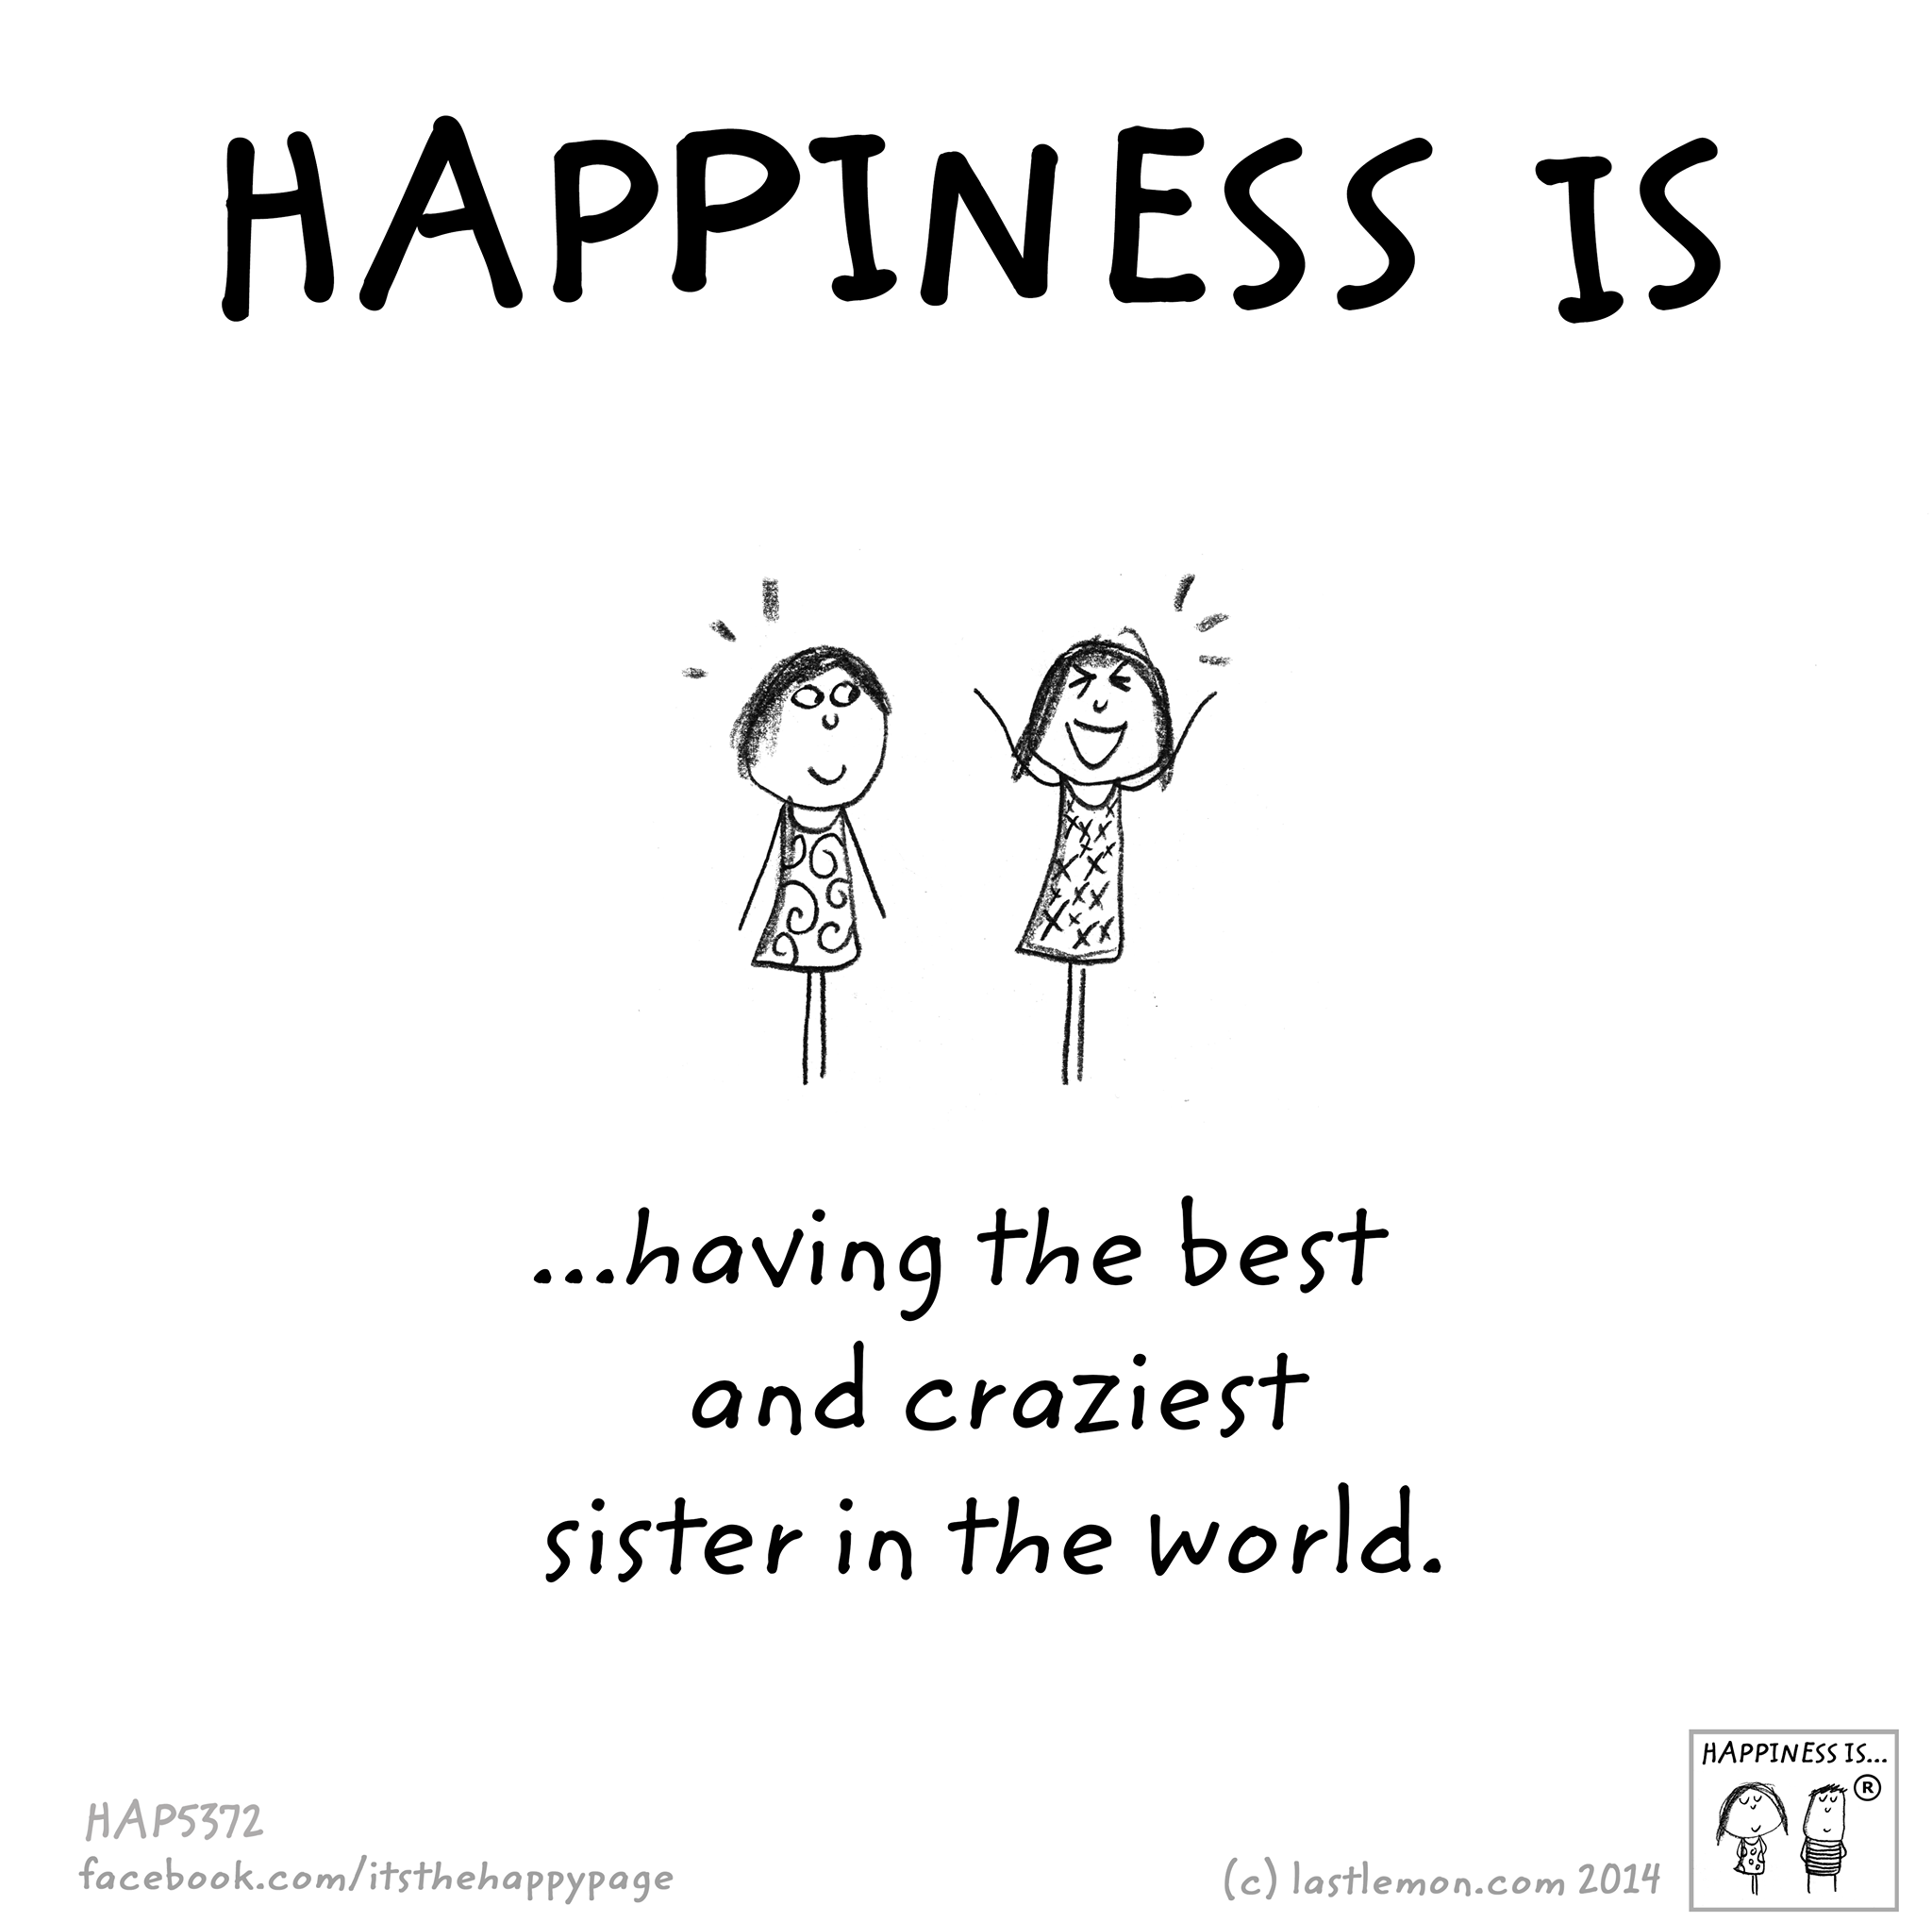 Happy Vit Dear All The Best Just Rock Rock Nd Rock Surly Ull Go Through Good Nd I Wish U Get A Leave Sister Quotes Sister Love Quotes My Sister Quotes